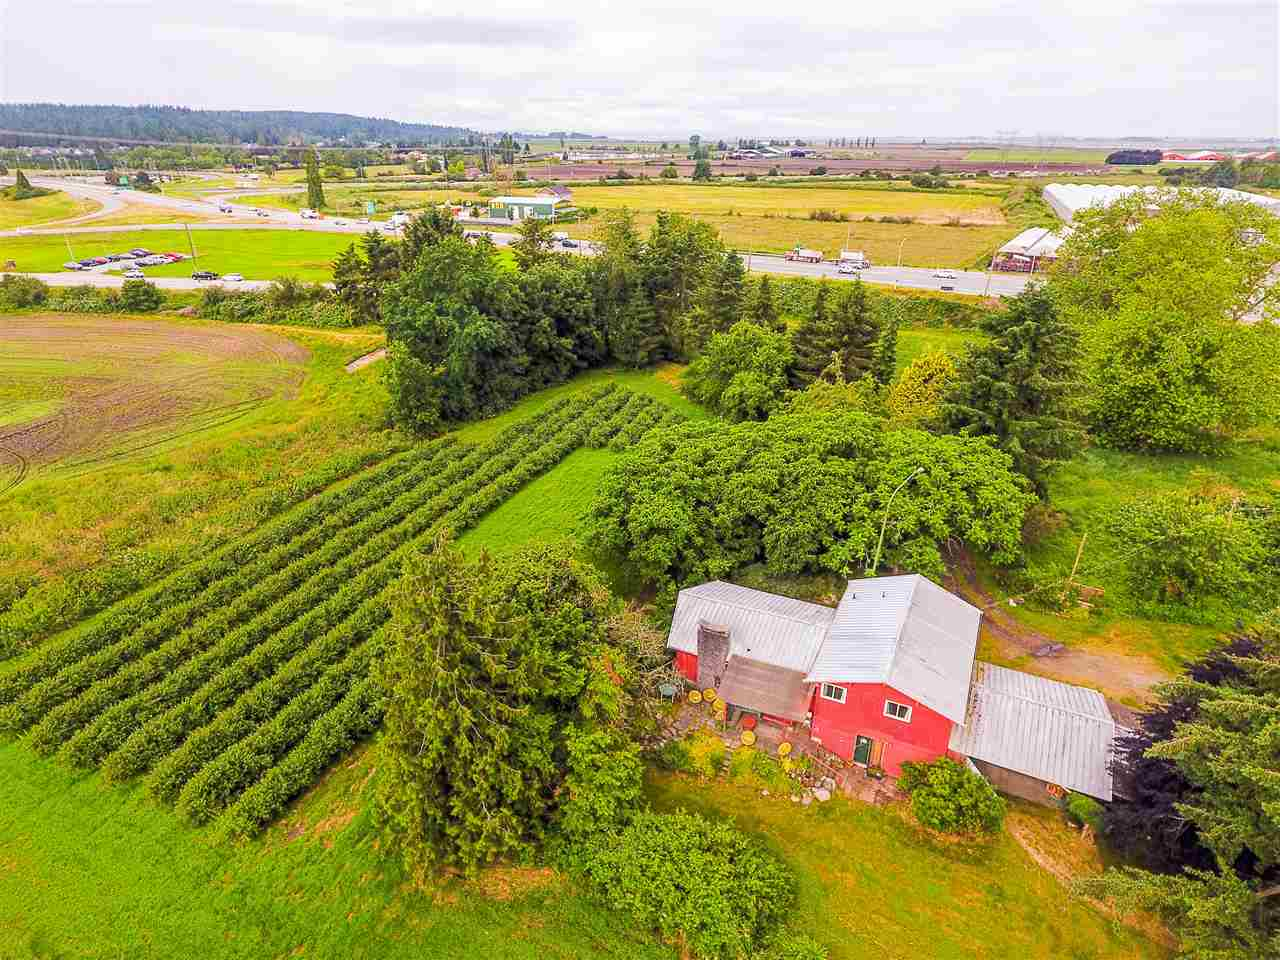 First time on a the market in 75 years! Incredibly rare and highly coveted 90 acre parcel in strategic location close to Hwy 99, US Border and just minutes to major South Surrey & White Rock developments. Incredible investment opportunity here! Potential for large scale agri-business. Current property contains an occupied farm house and barn. Do not disturb owners or enter premises without permission. By private appointment only. Contact listing agent for more details. Foreign purchaser tax not applicable.